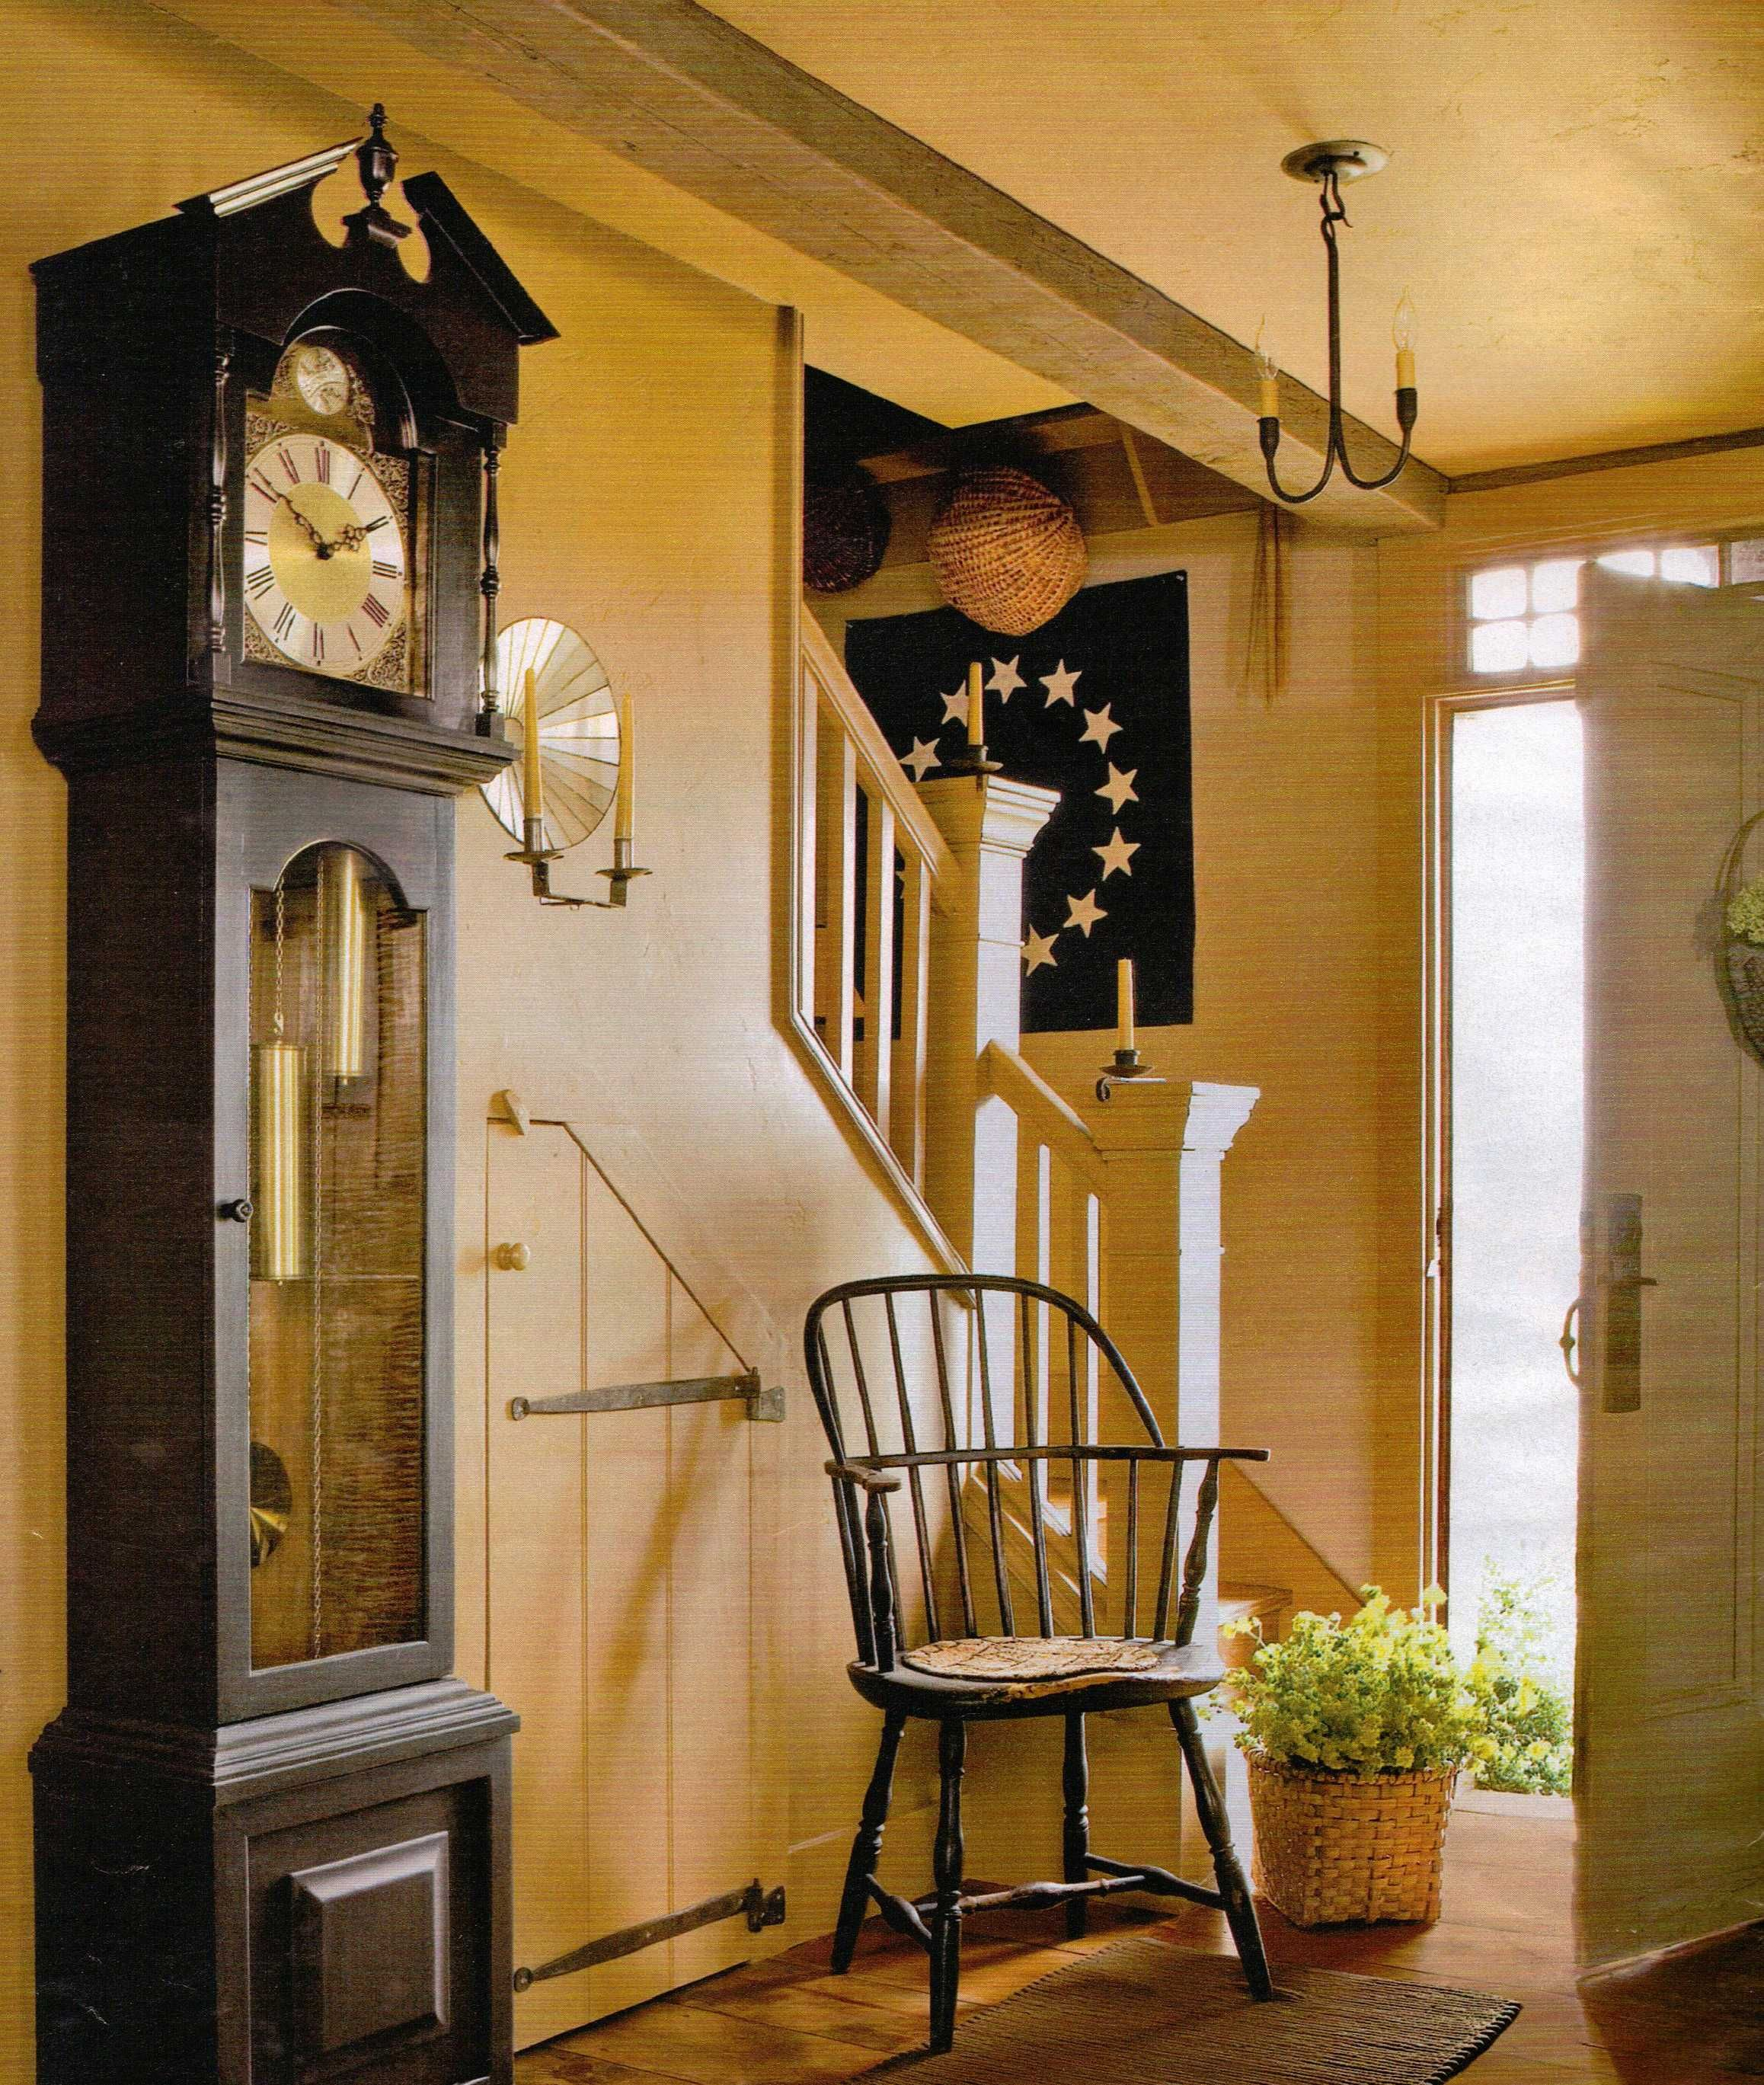 17 Best Ideas About Bar Under Stairs On Pinterest: Great Entry...especially Love The Door Under The Staircase